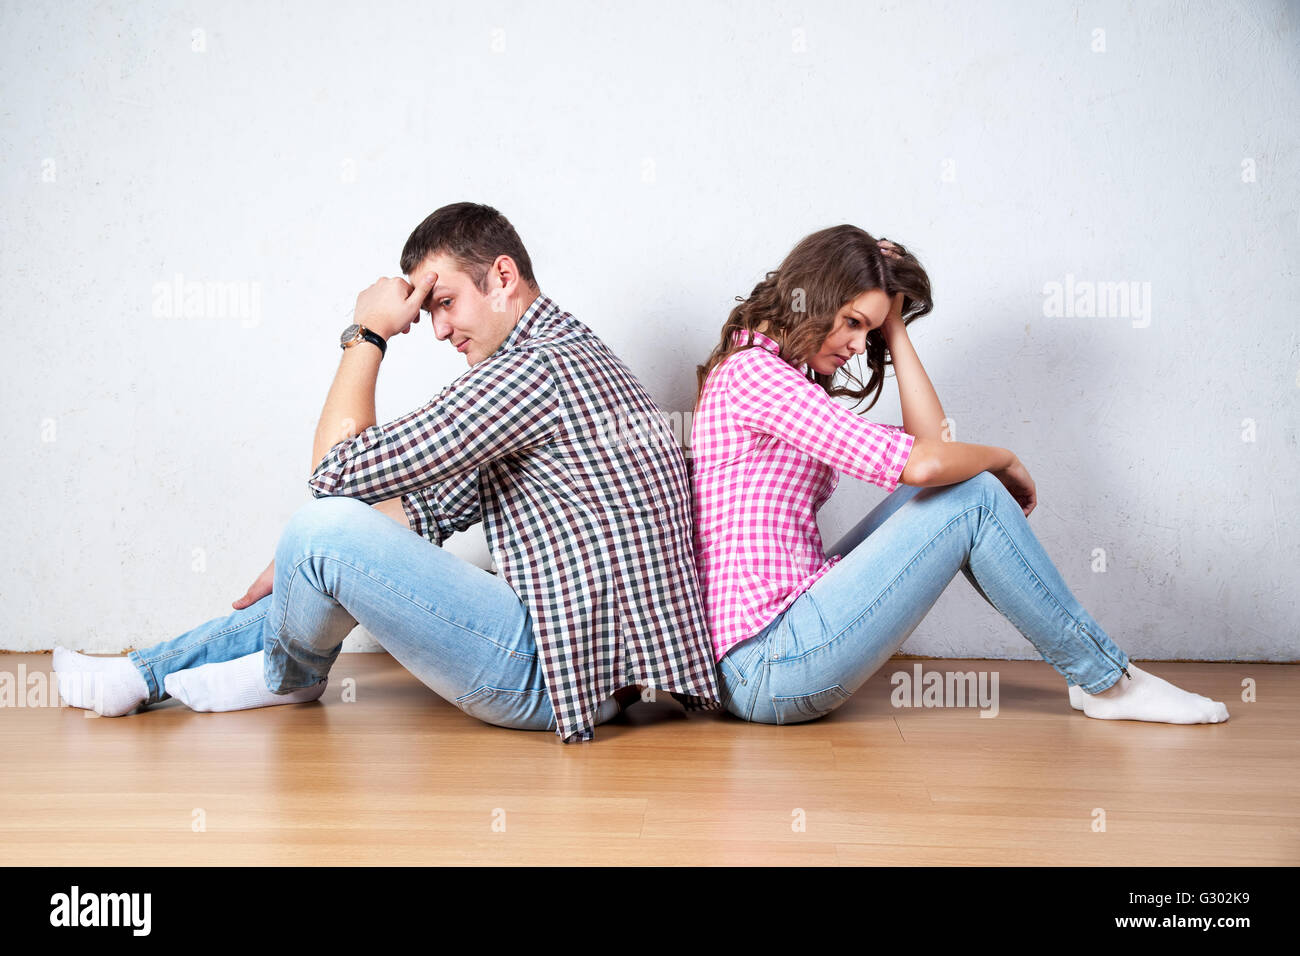 Couple sitting with their backs turned after having an argument - Stock Image